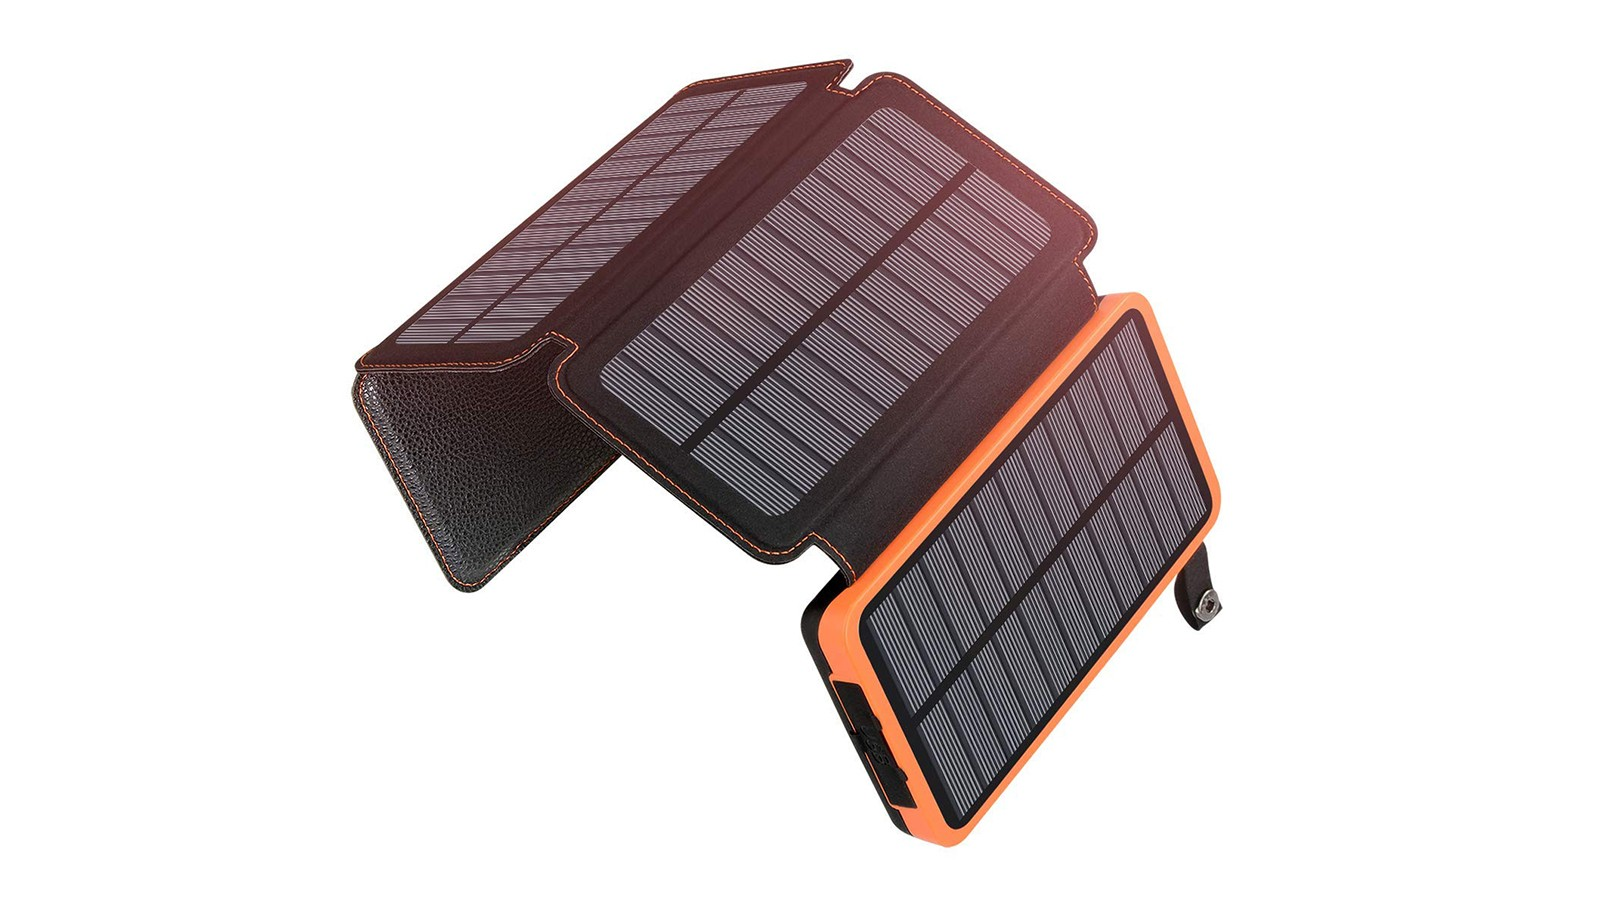 ADDTOP Solar Power Bank charger